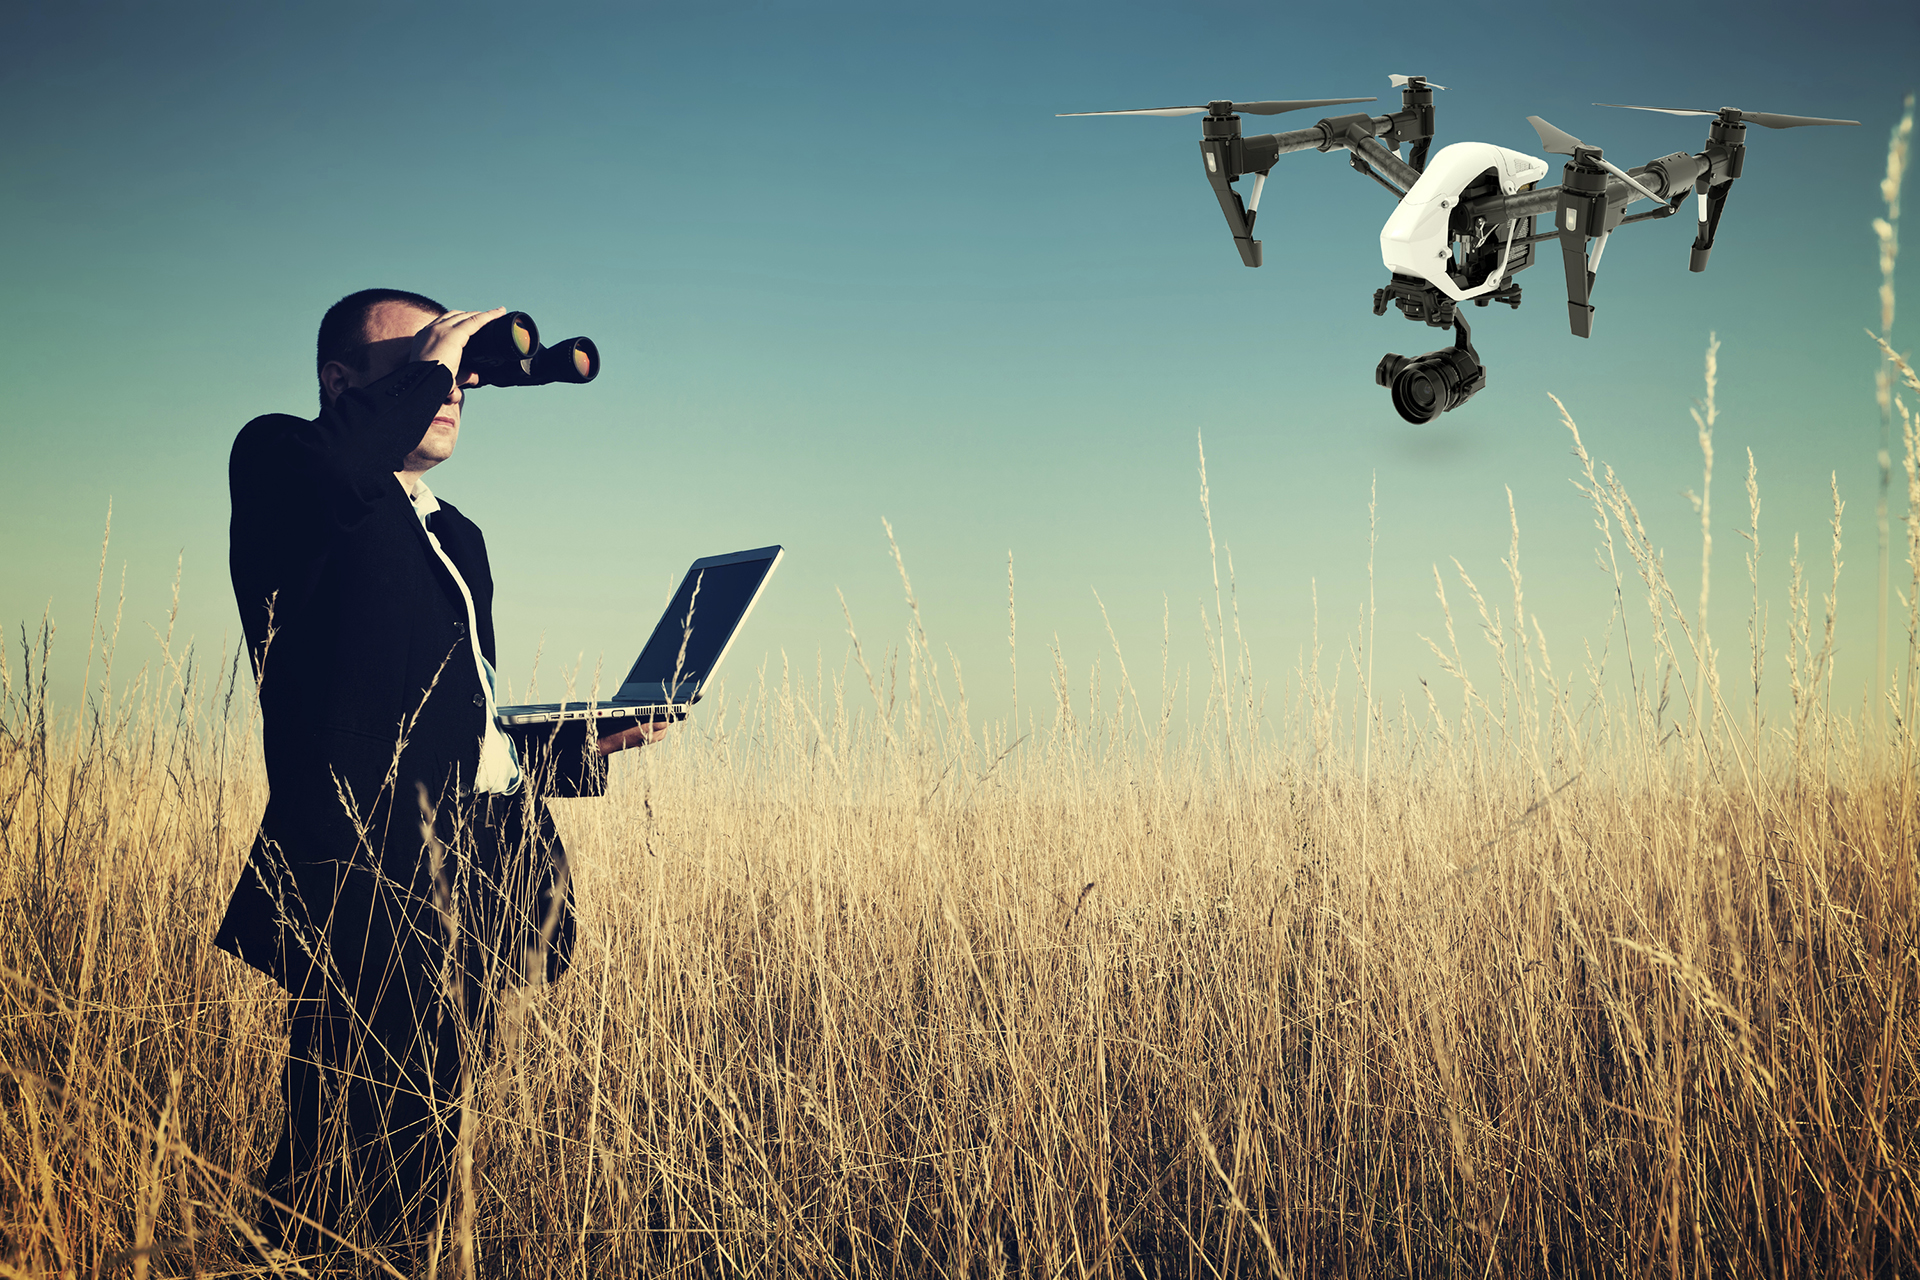 Image of Man Searching for Drone Services